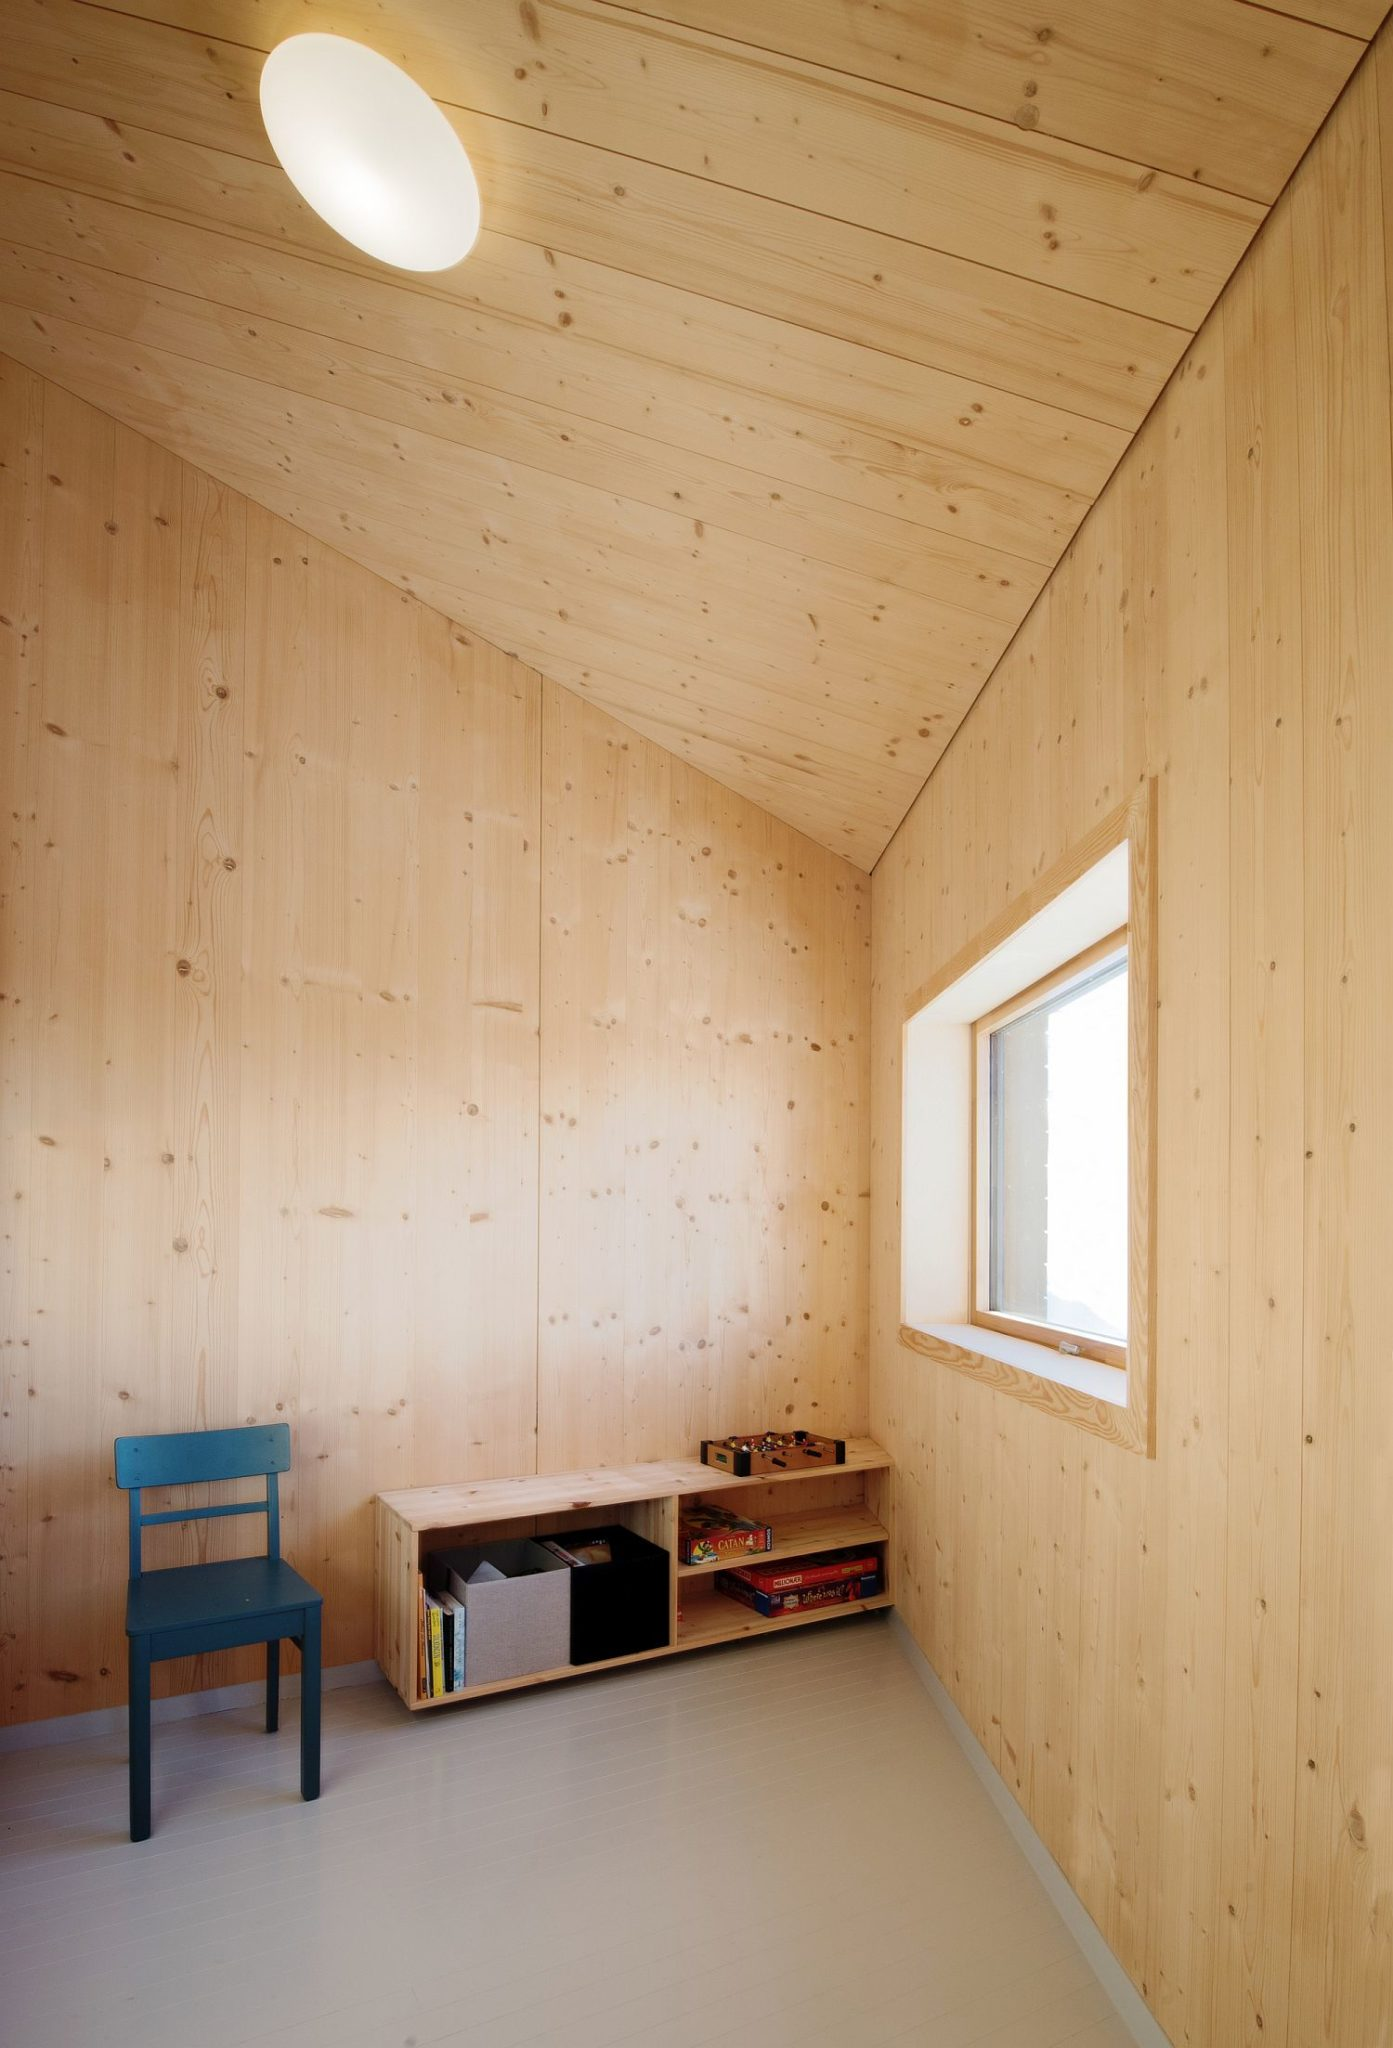 Simplicity and minimalism make a statement inside the cabin